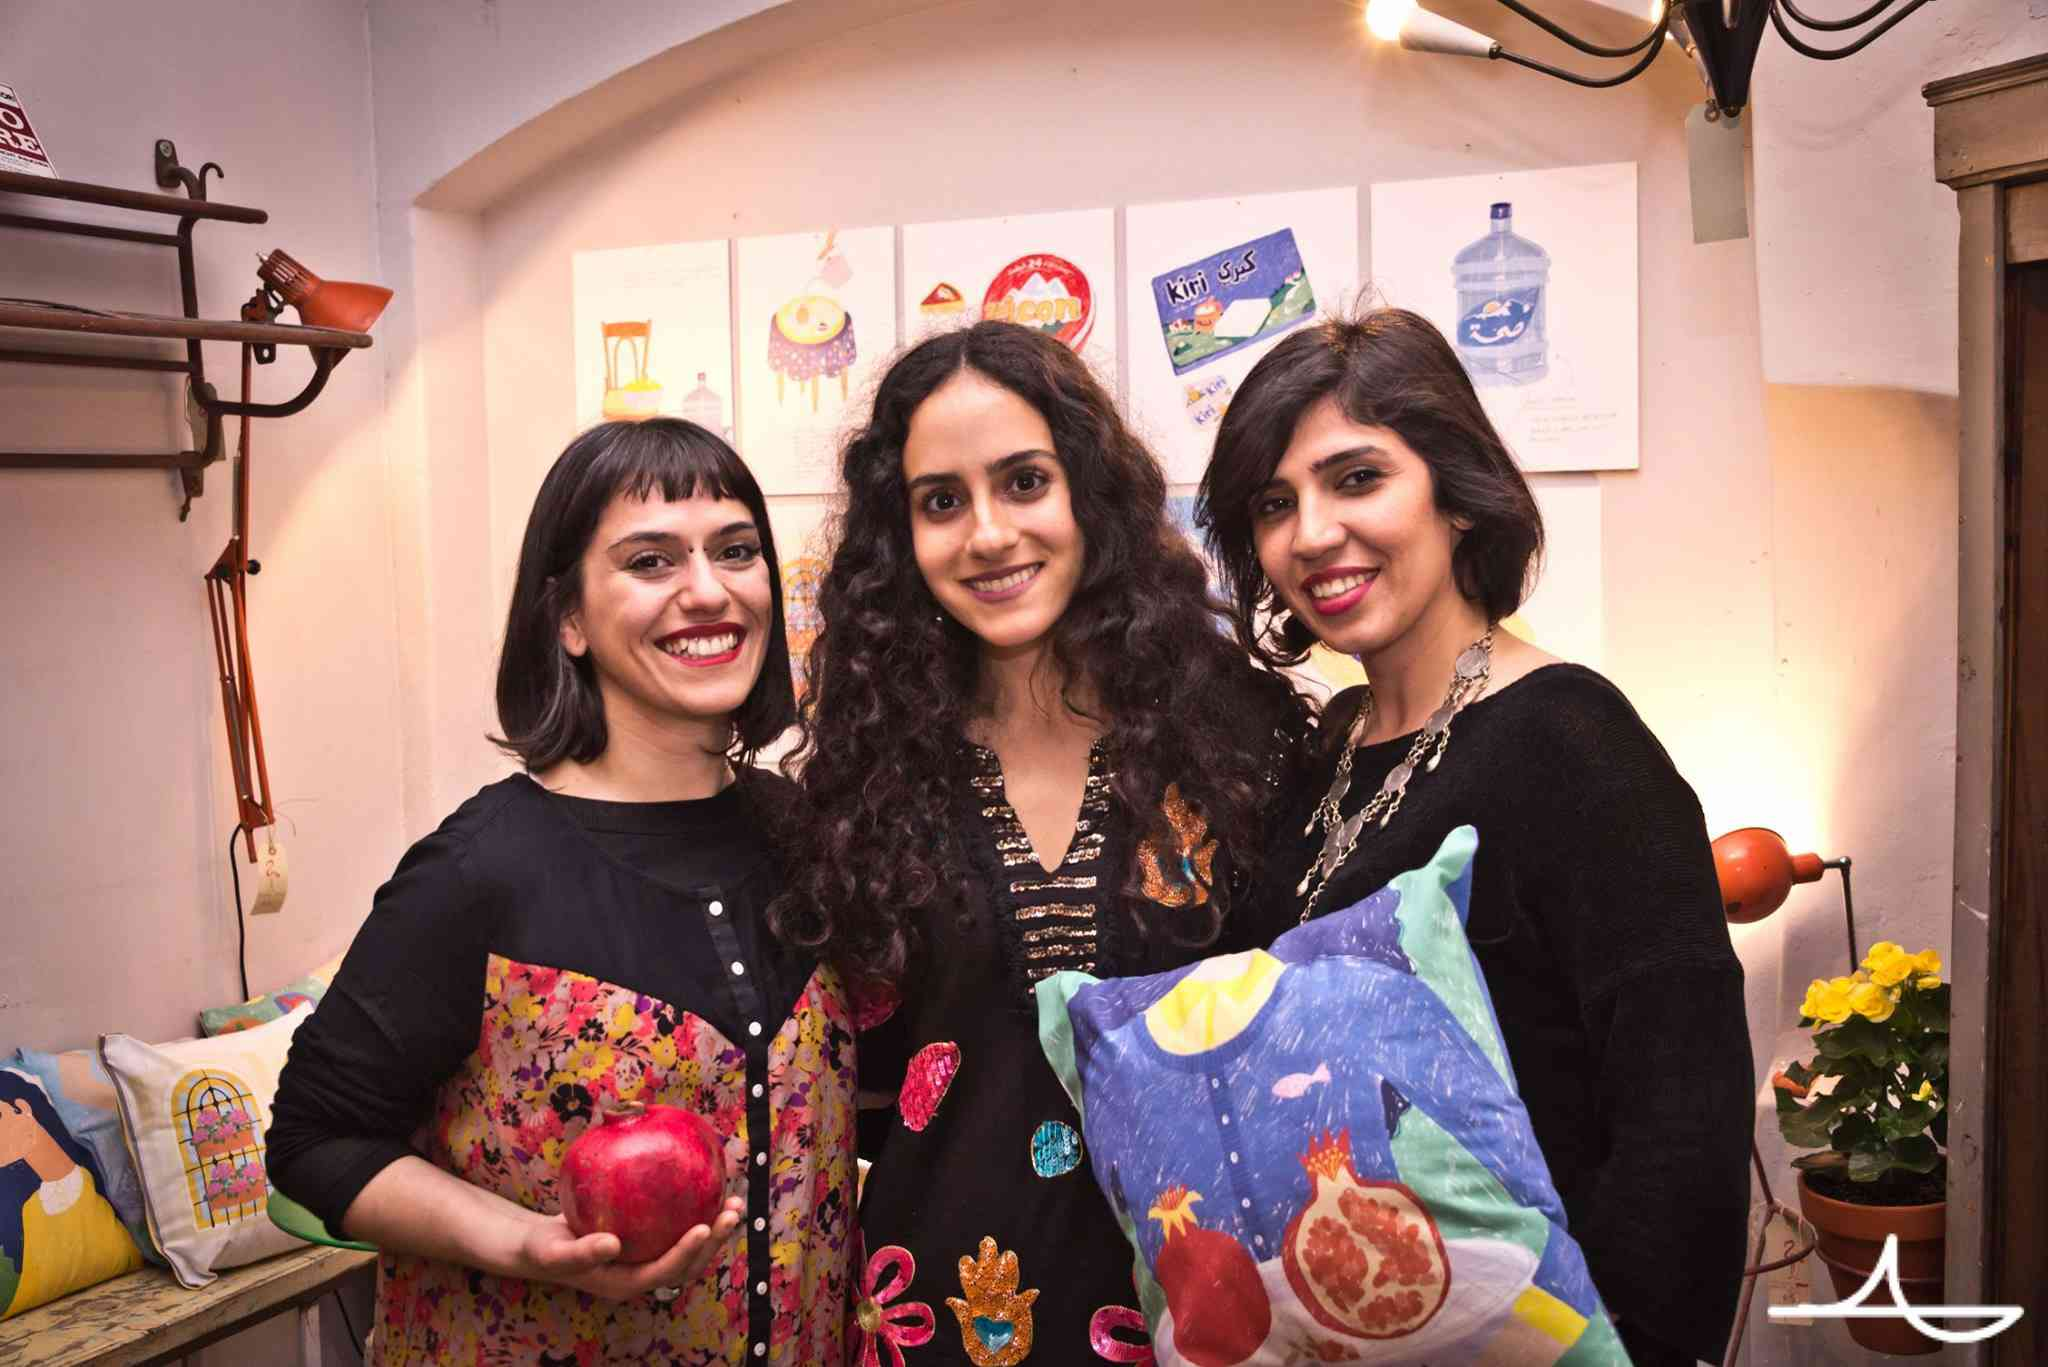 Artist illustrator Nour Flayhan with festival members